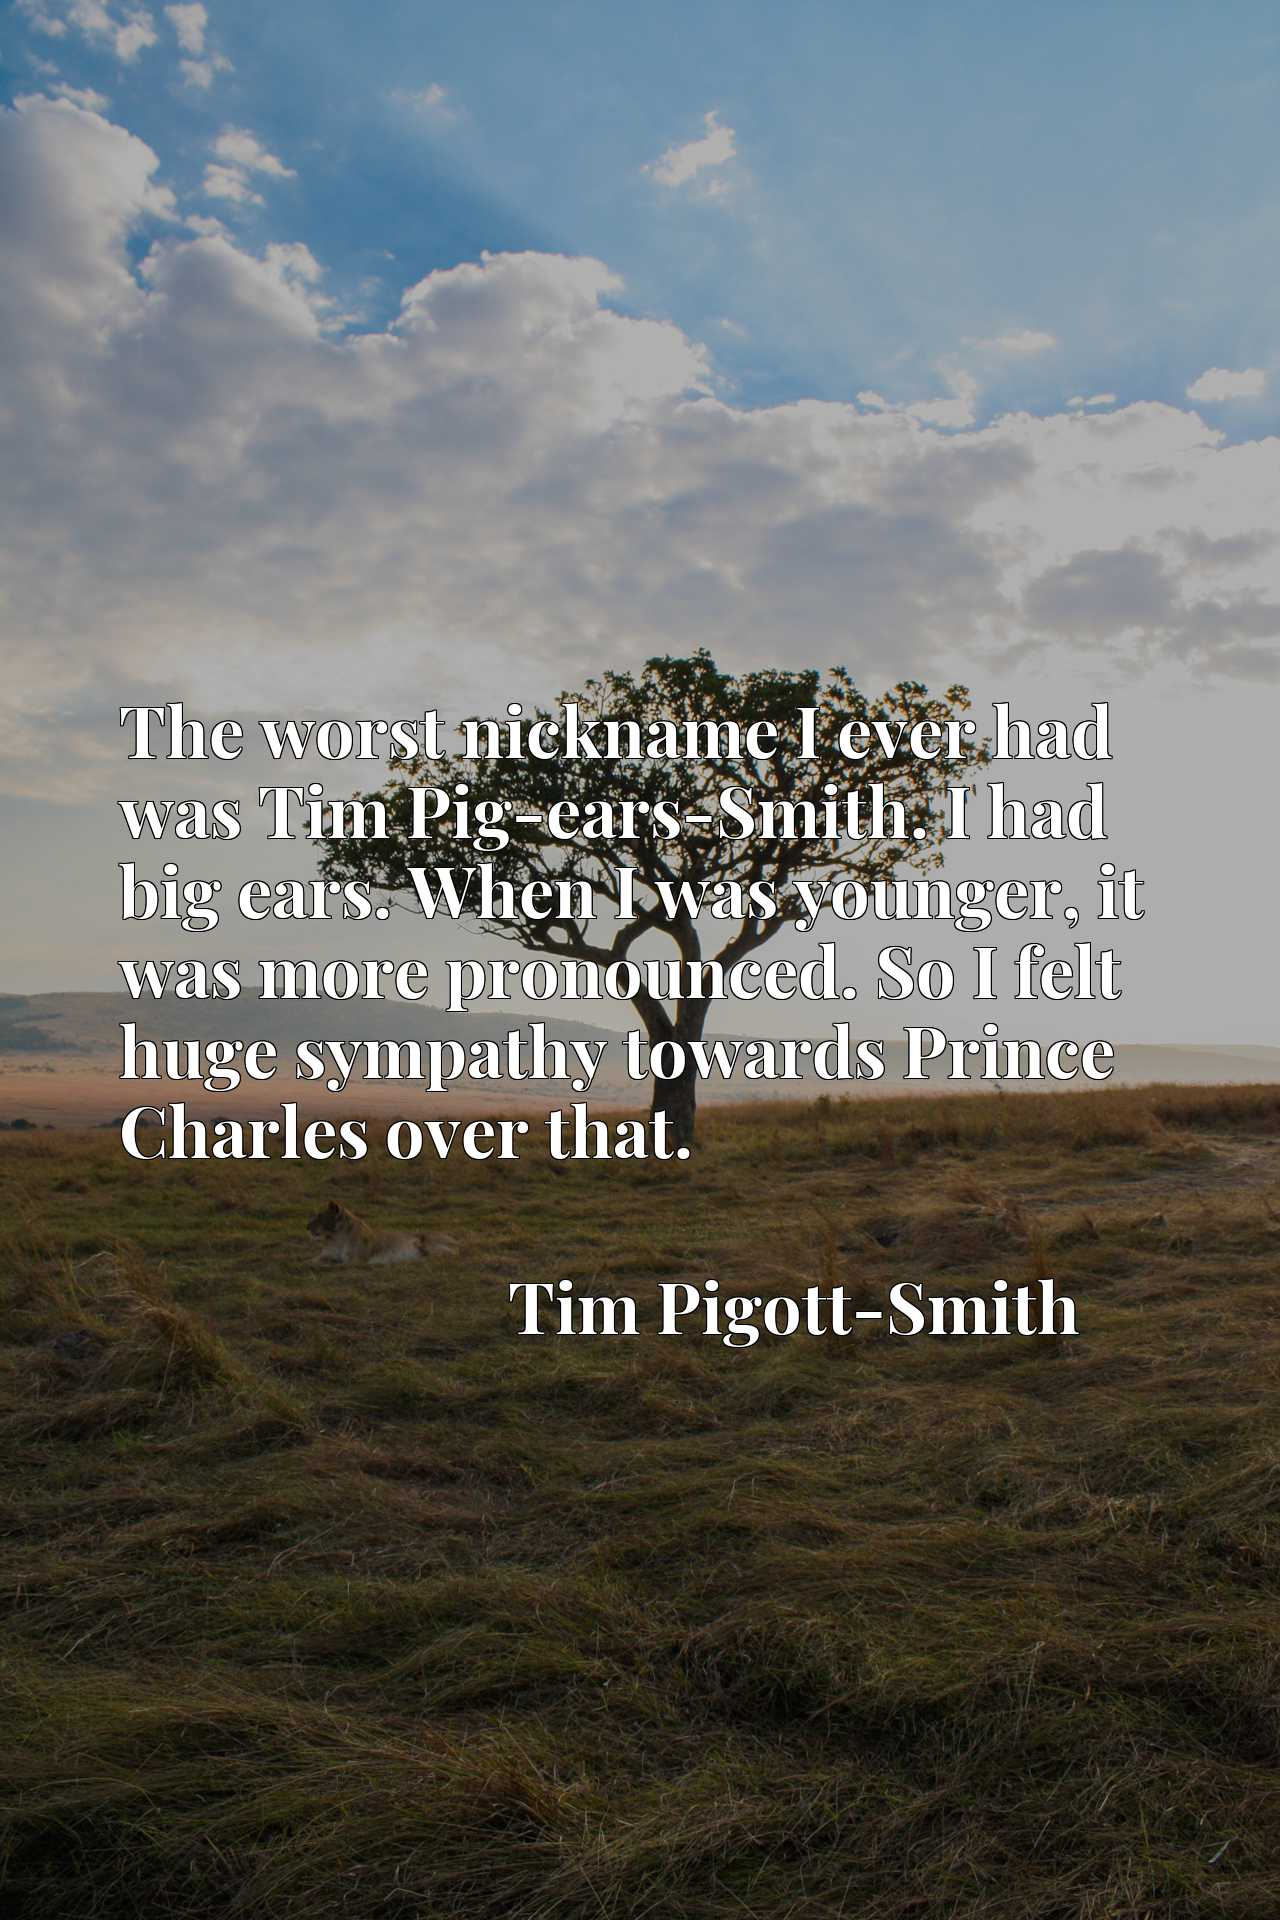 The worst nickname I ever had was Tim Pig-ears-Smith. I had big ears. When I was younger, it was more pronounced. So I felt huge sympathy towards Prince Charles over that.